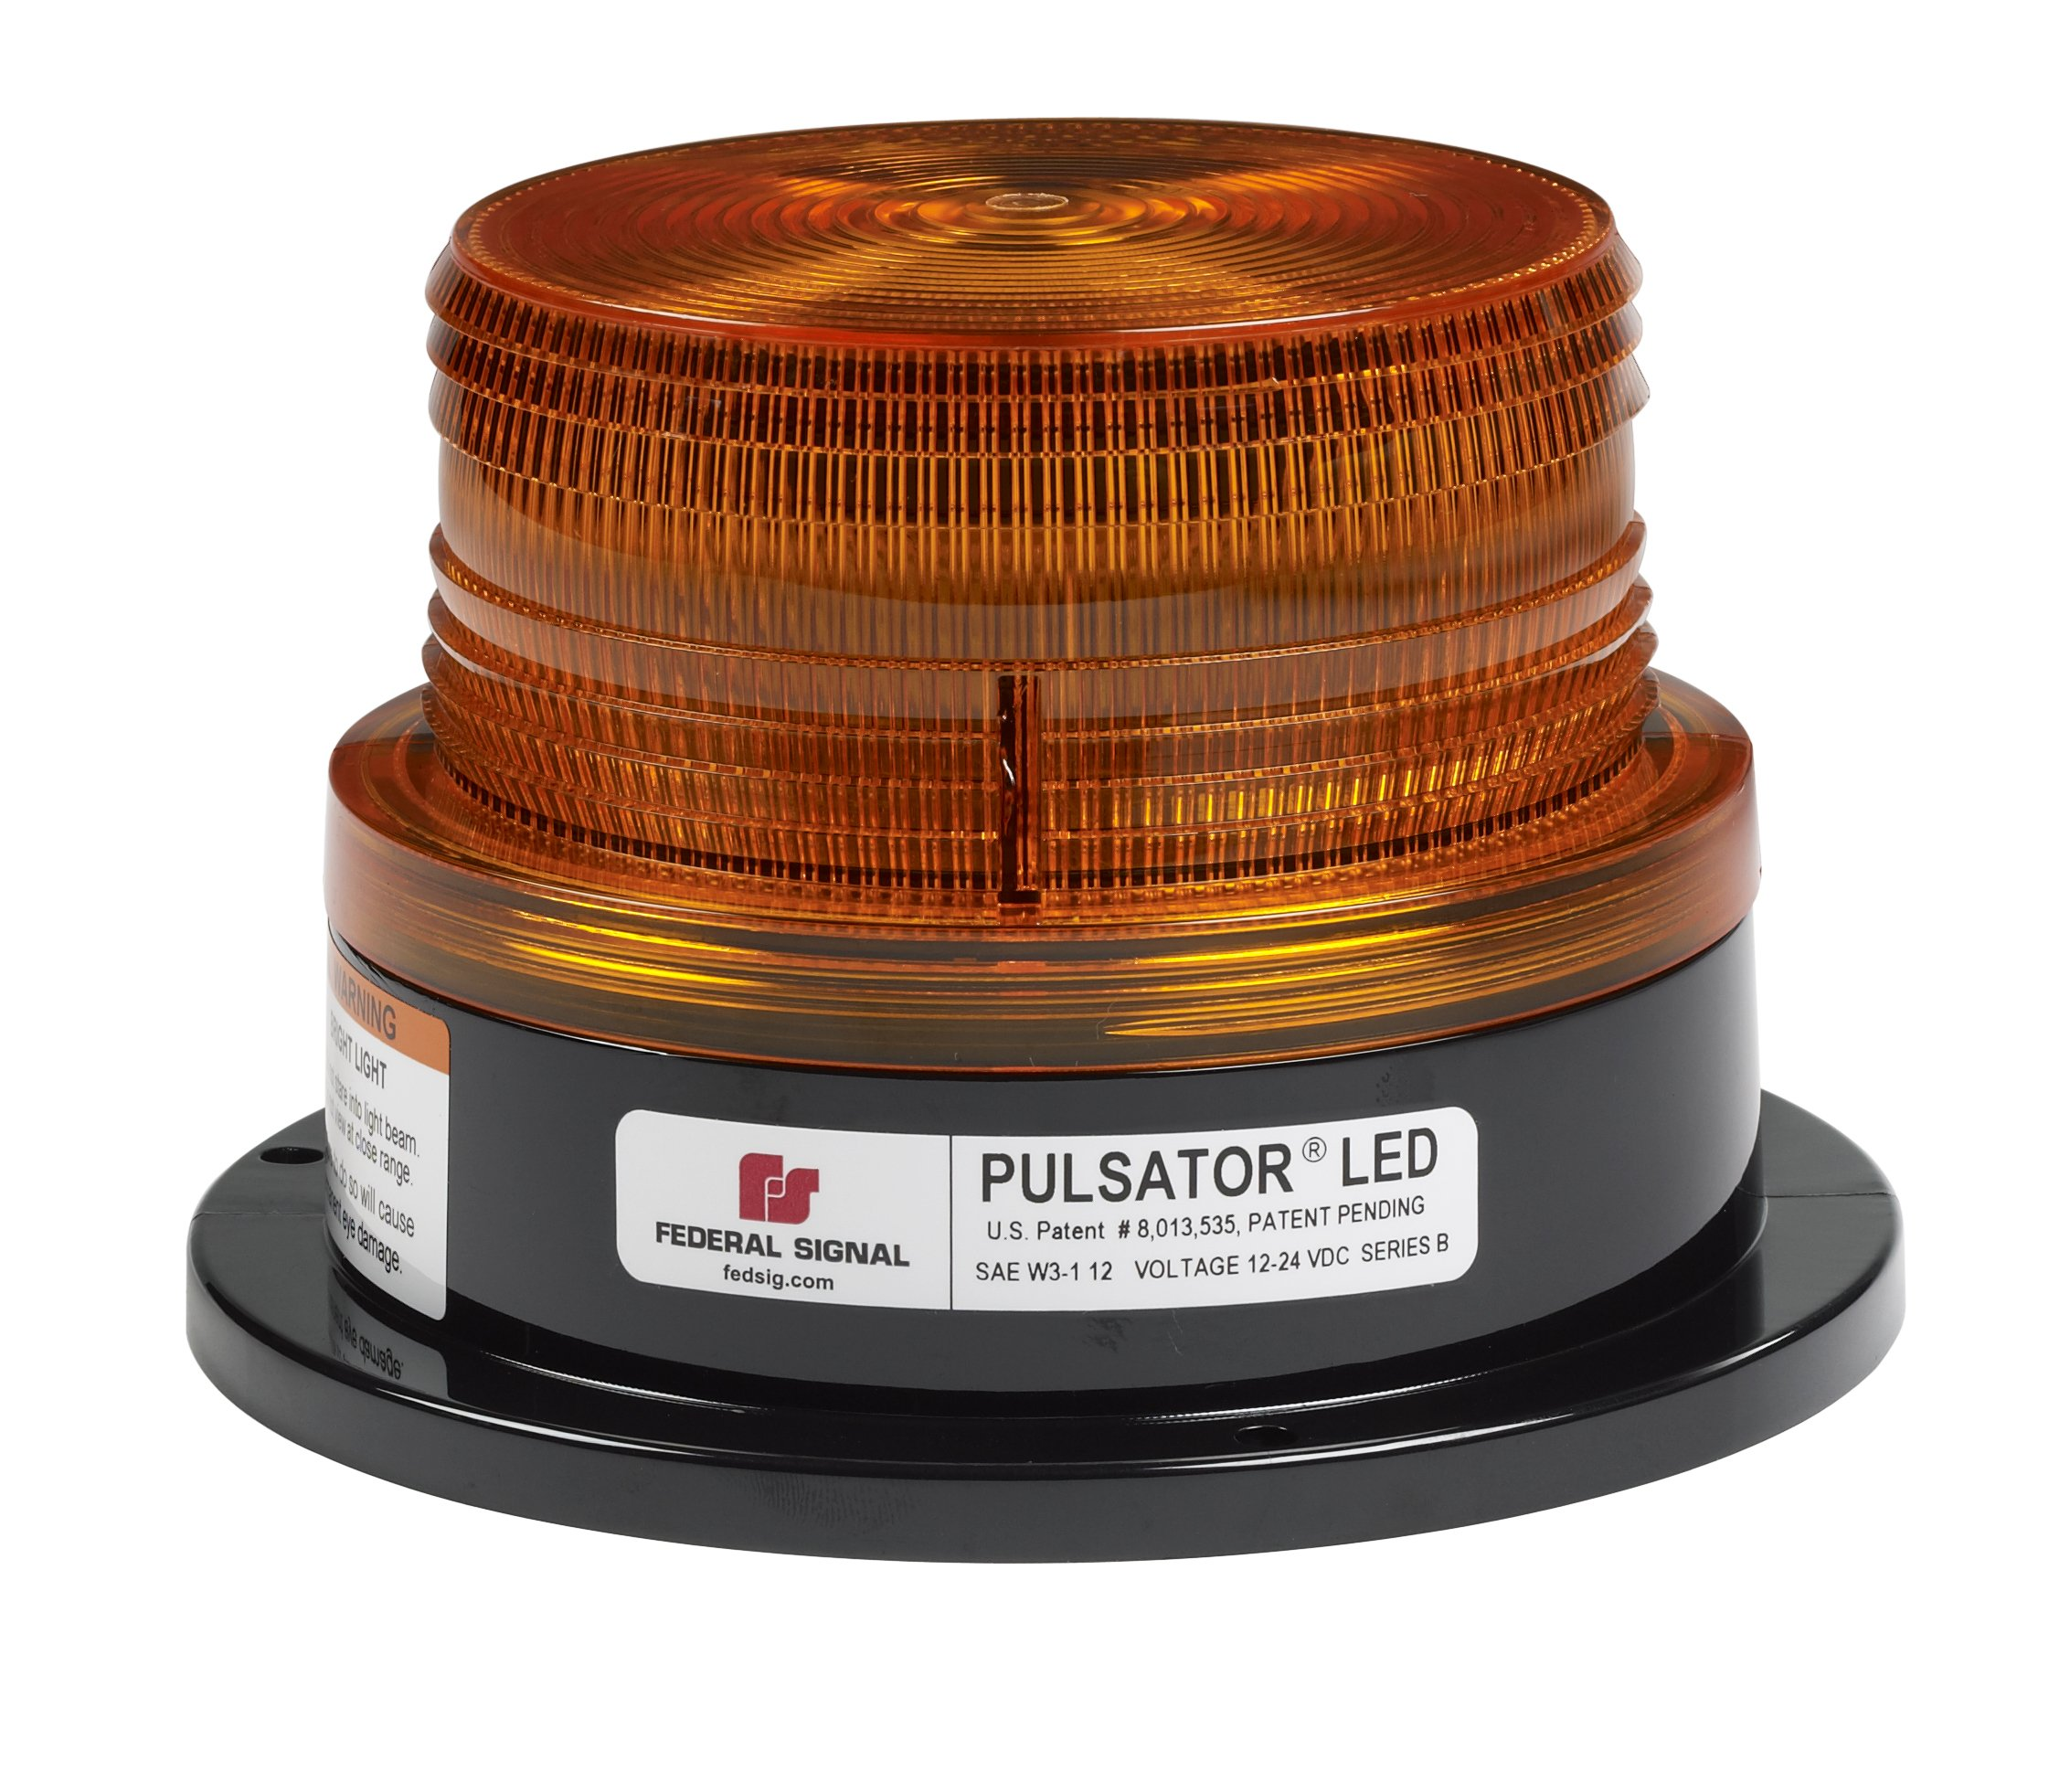 Federal Signal 212672-02SB Class 2 Pulsator 451 LED Beacon, Magnetic Mount with Cigarette Plug, Short Dome, Amber